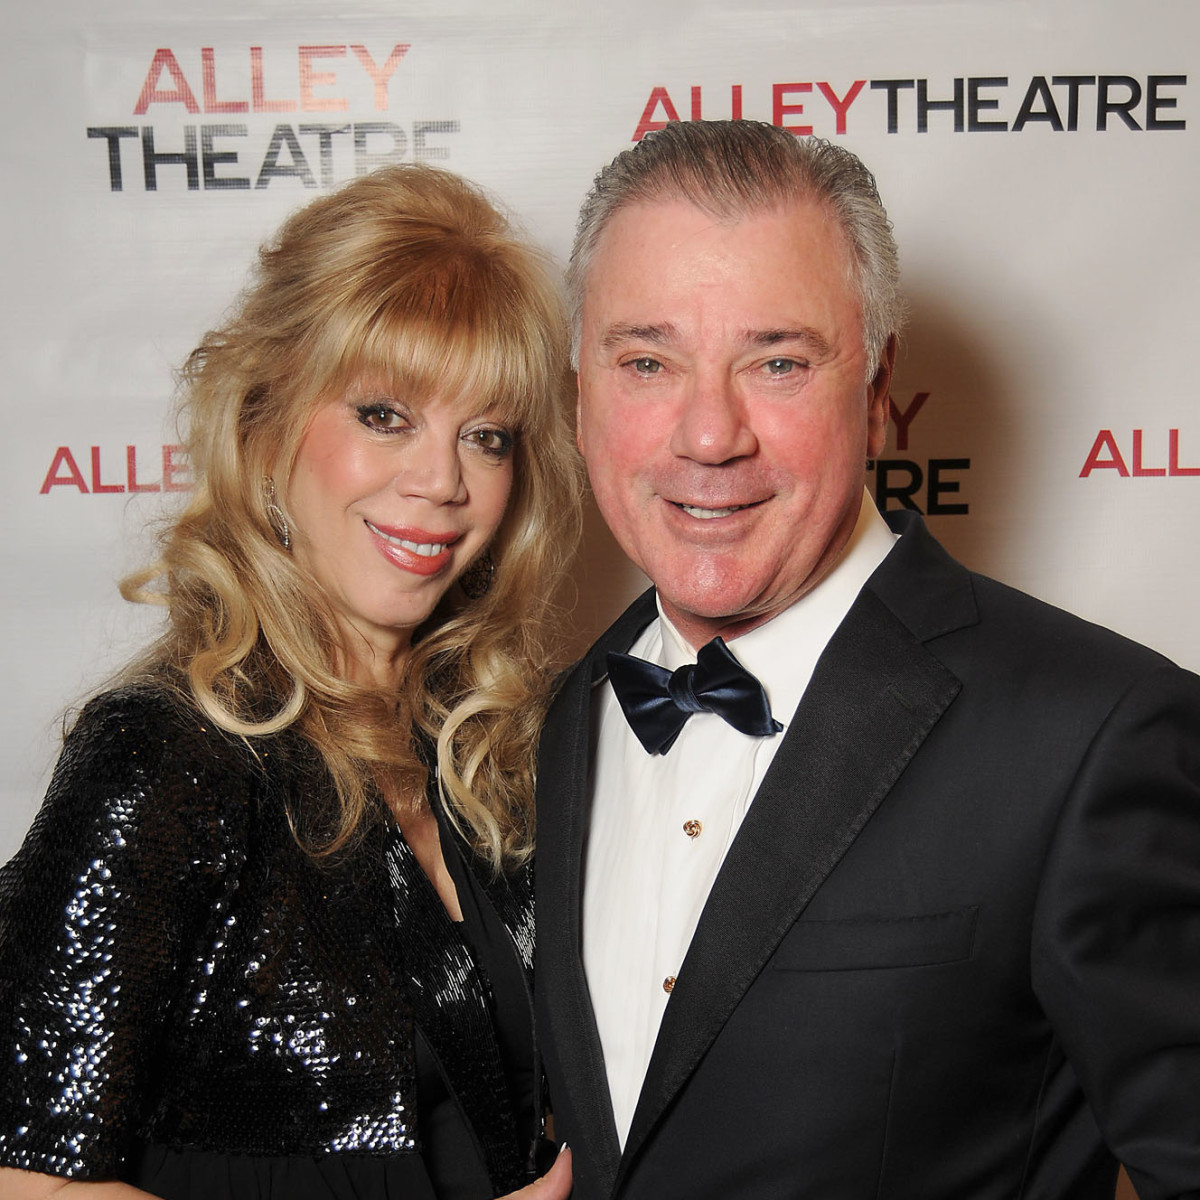 News, Shelby, Alley Theatre opening, September 2015, Cathy and Jessy Marion